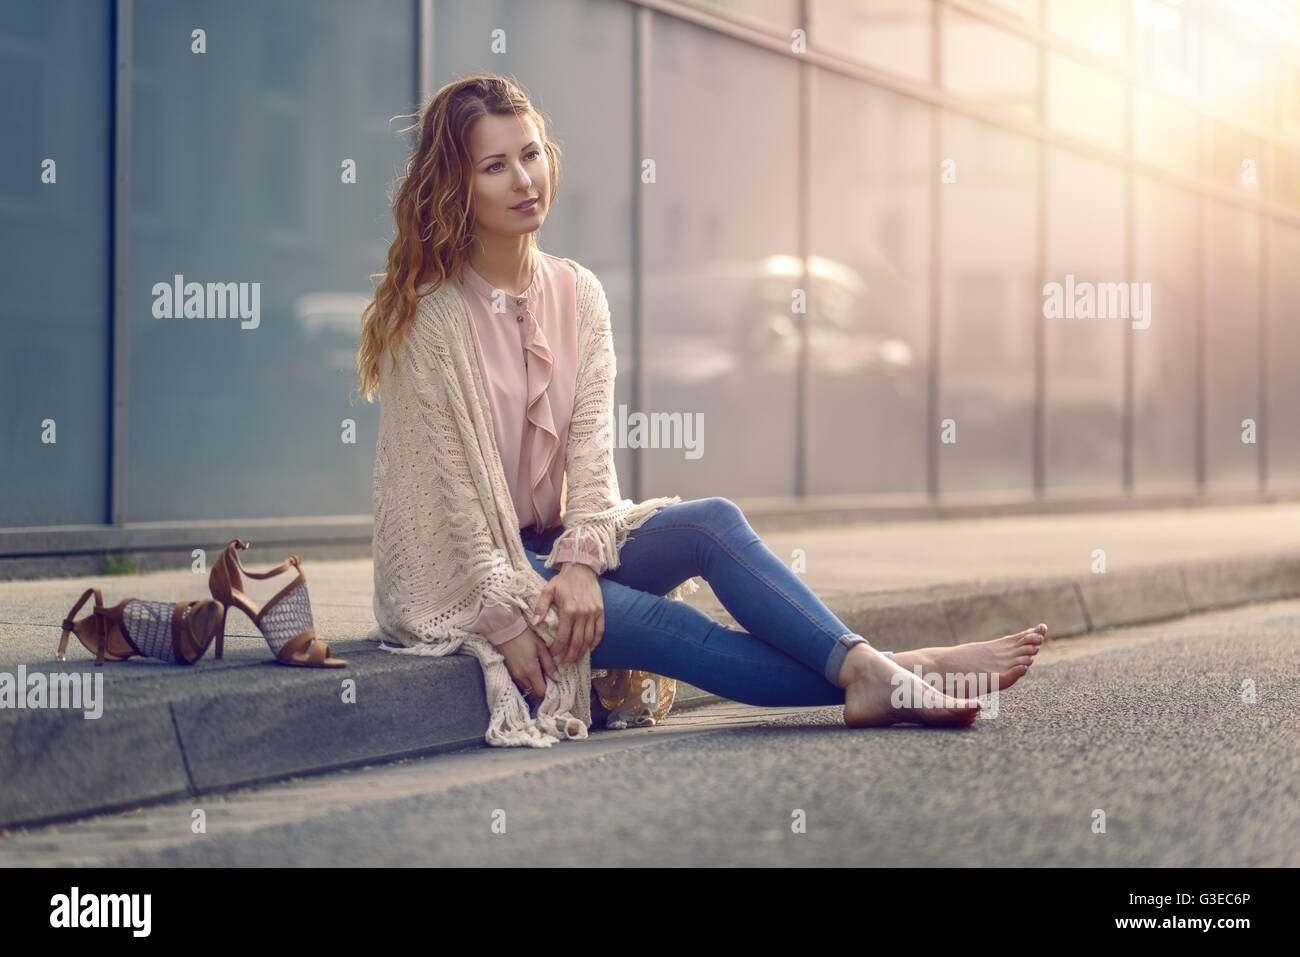 Serious pretty trendy young woman sitting relaxing on a sidewalk on an urban street in her high heels and fashionable - Stock Image